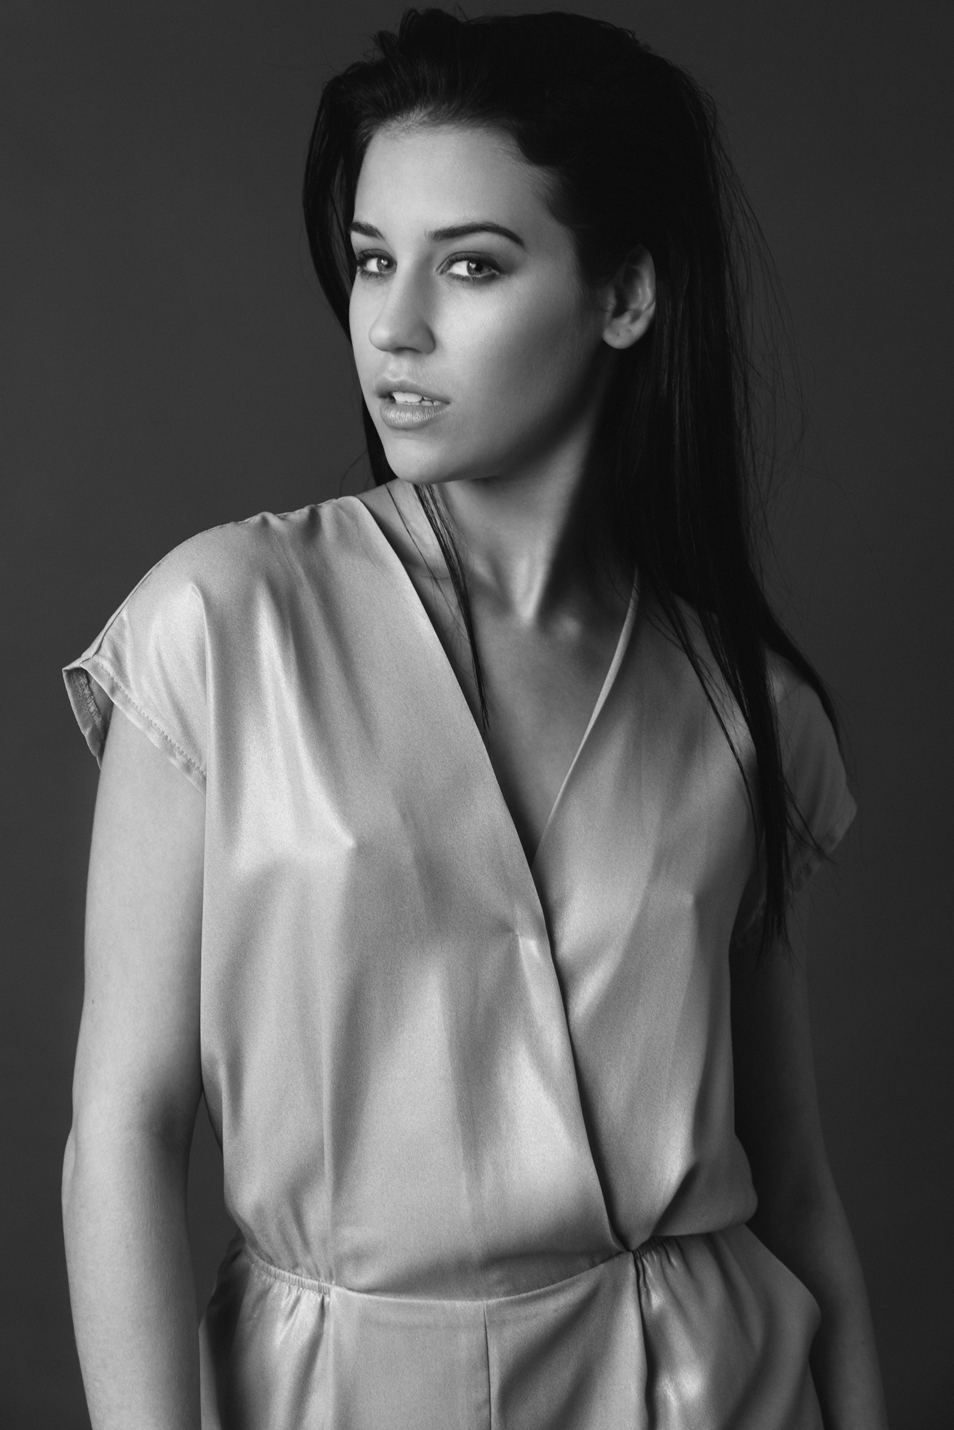 Michael Populus Photography photographs Angelle Folse with Kennedy MGMT